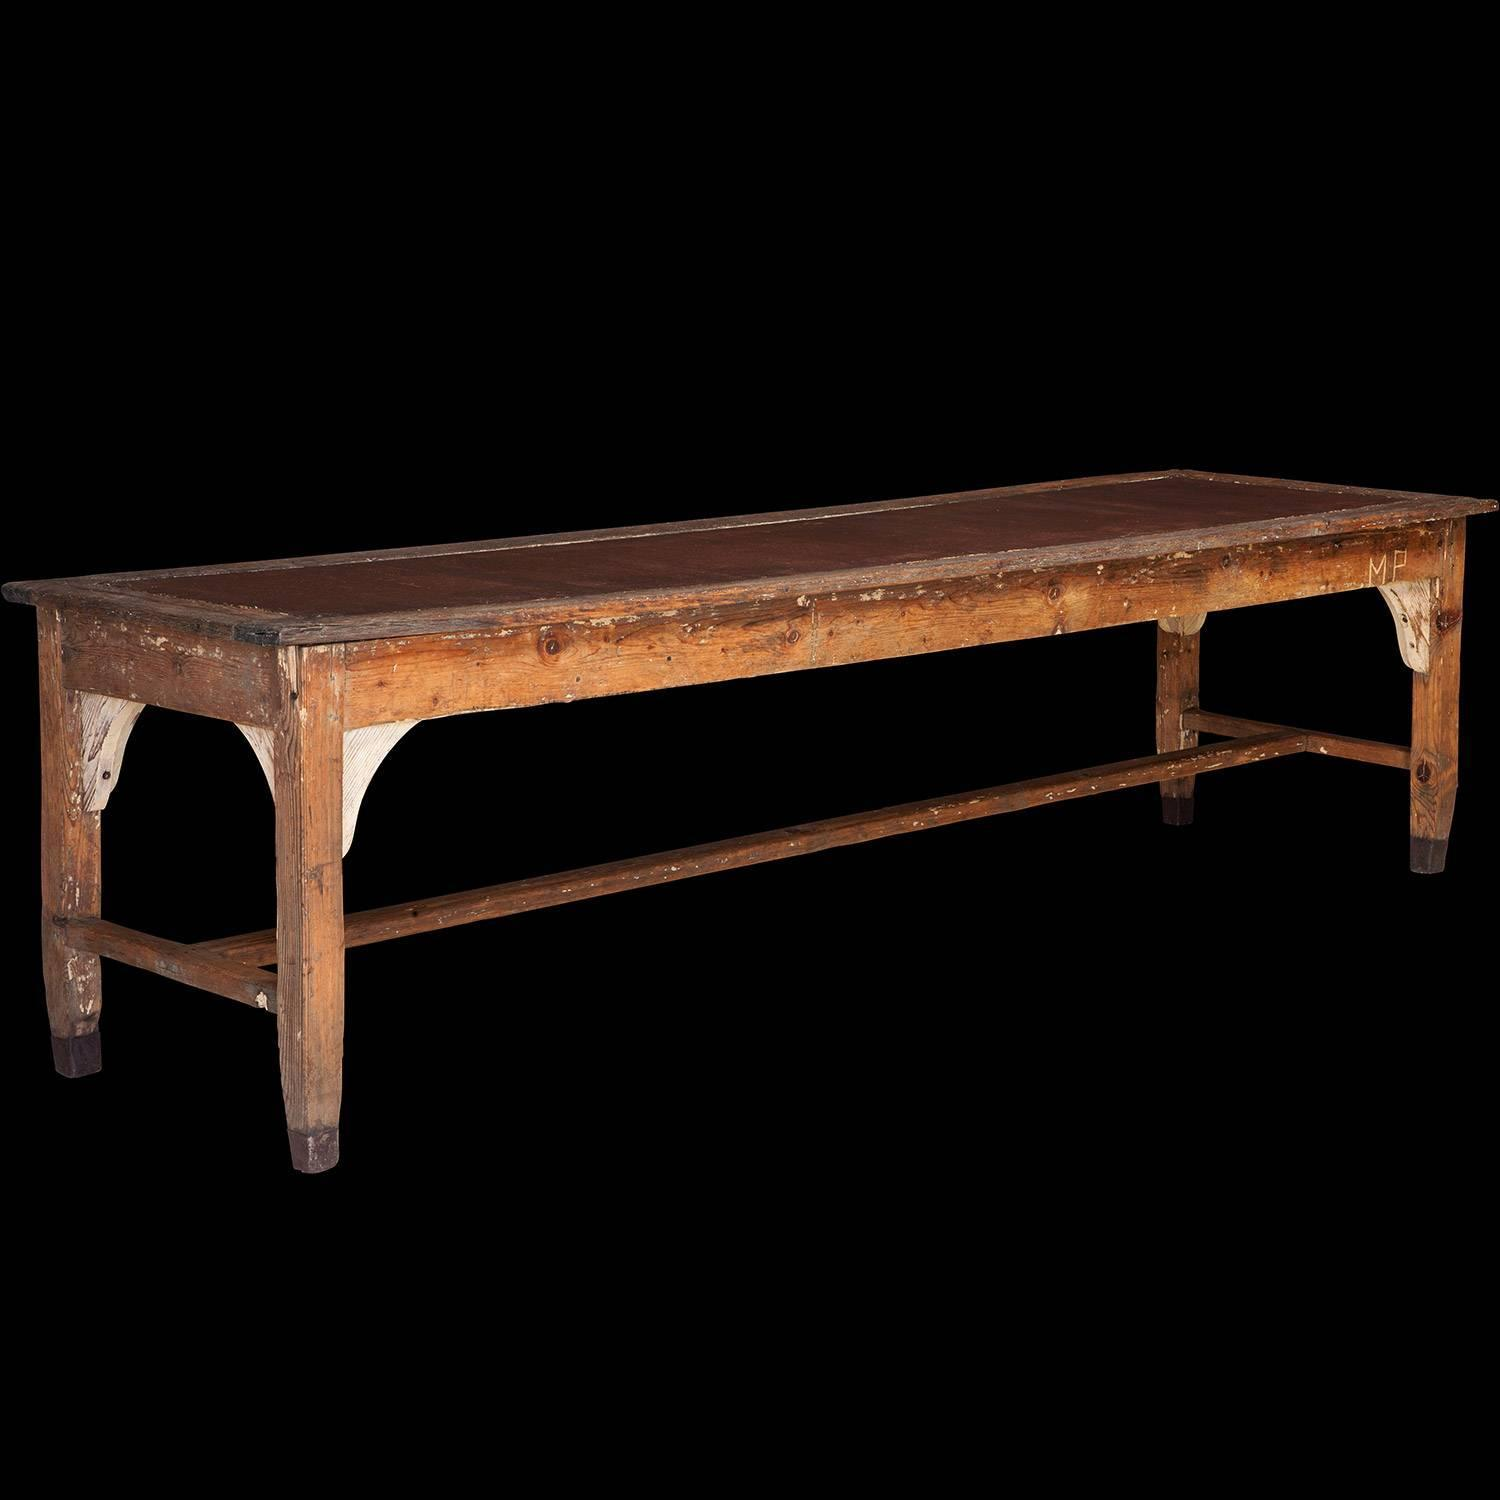 Metal Top Dining Table : Metal Top Dining Table For Sale at 1stdibs